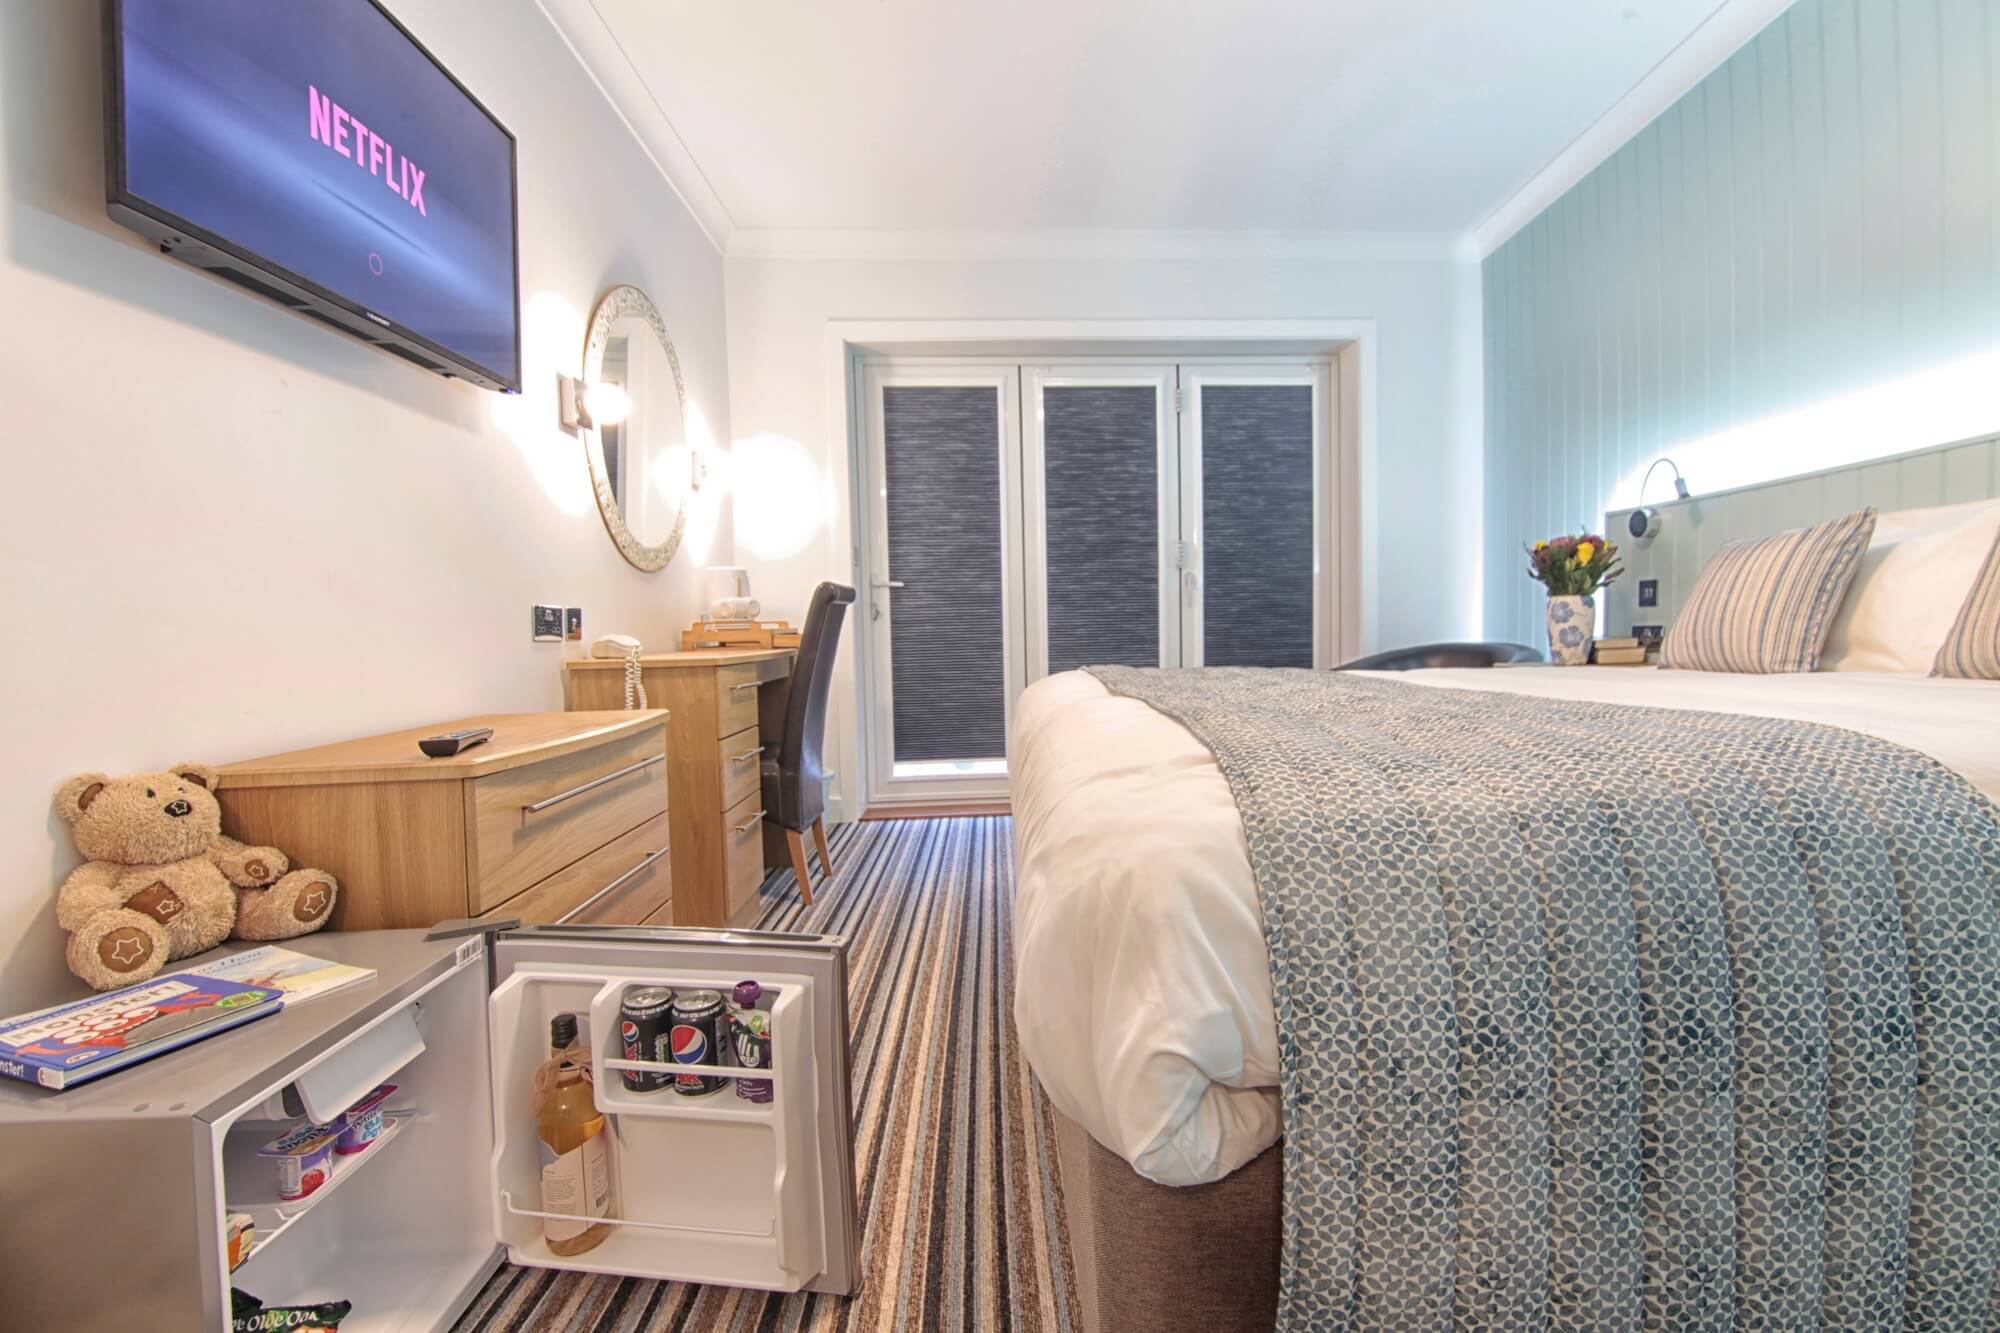 Luccombe hall Superior Hotel Accommodation, Shanklin, Isle of Wight